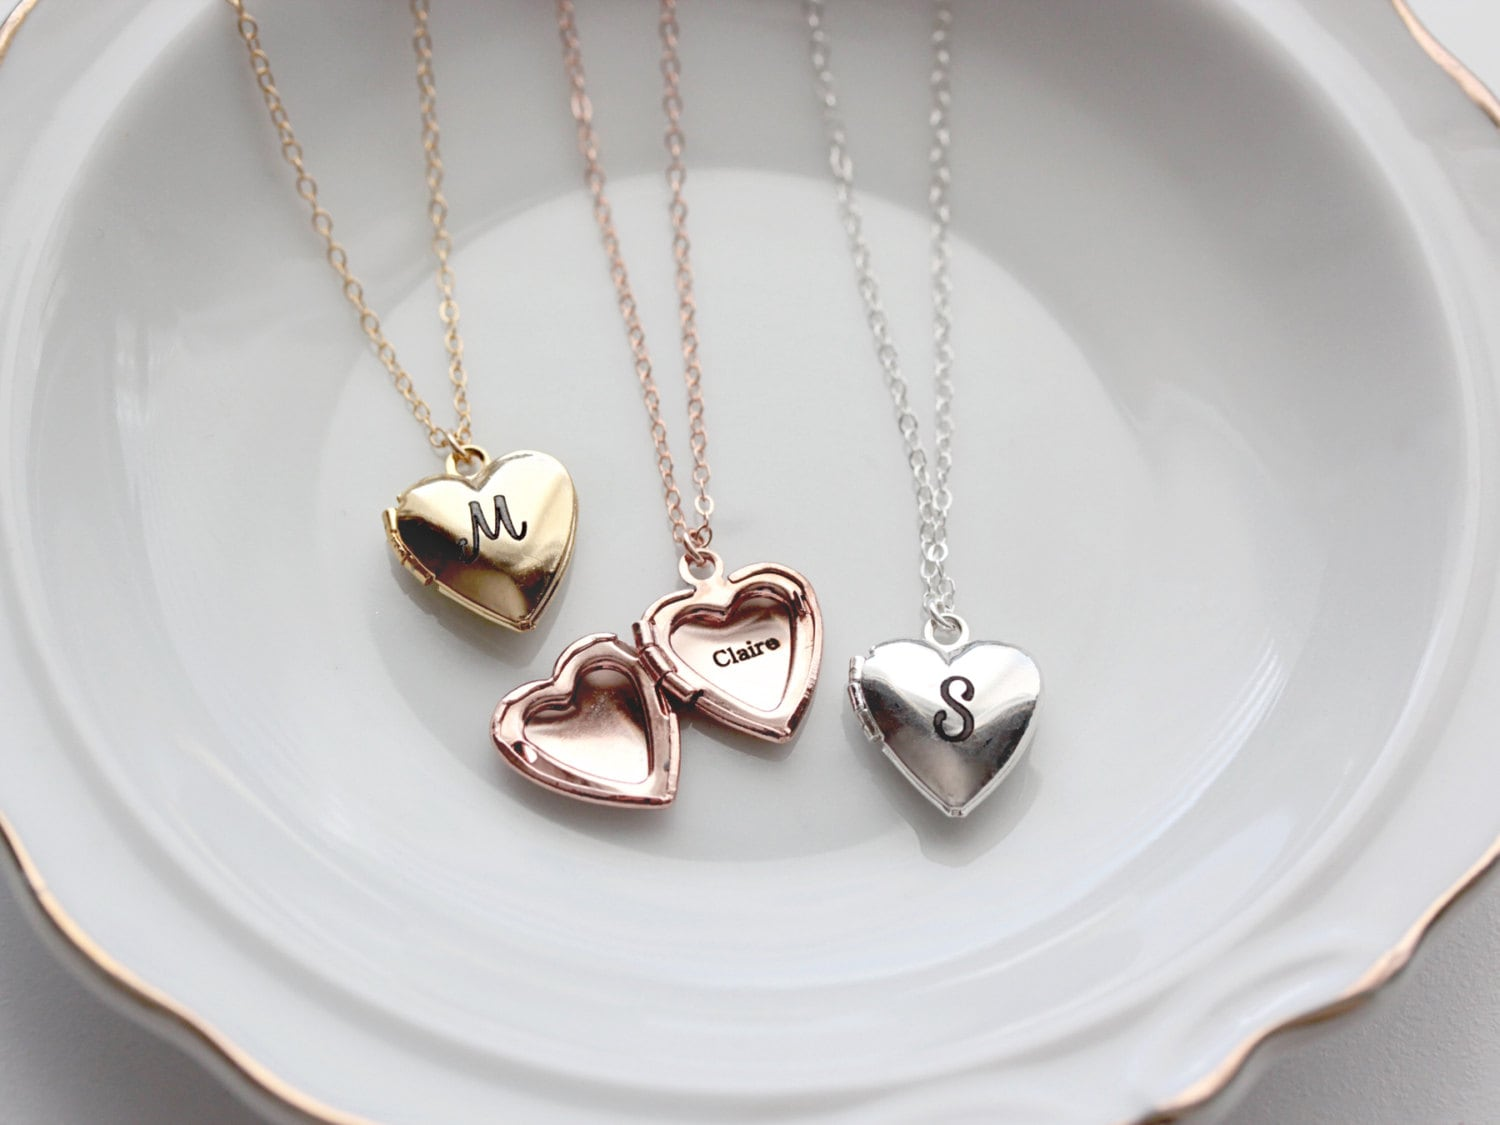 promise chains split lovers sterling products pendant you couple love silver free necklaces necklace shipping original with engraved heart pair